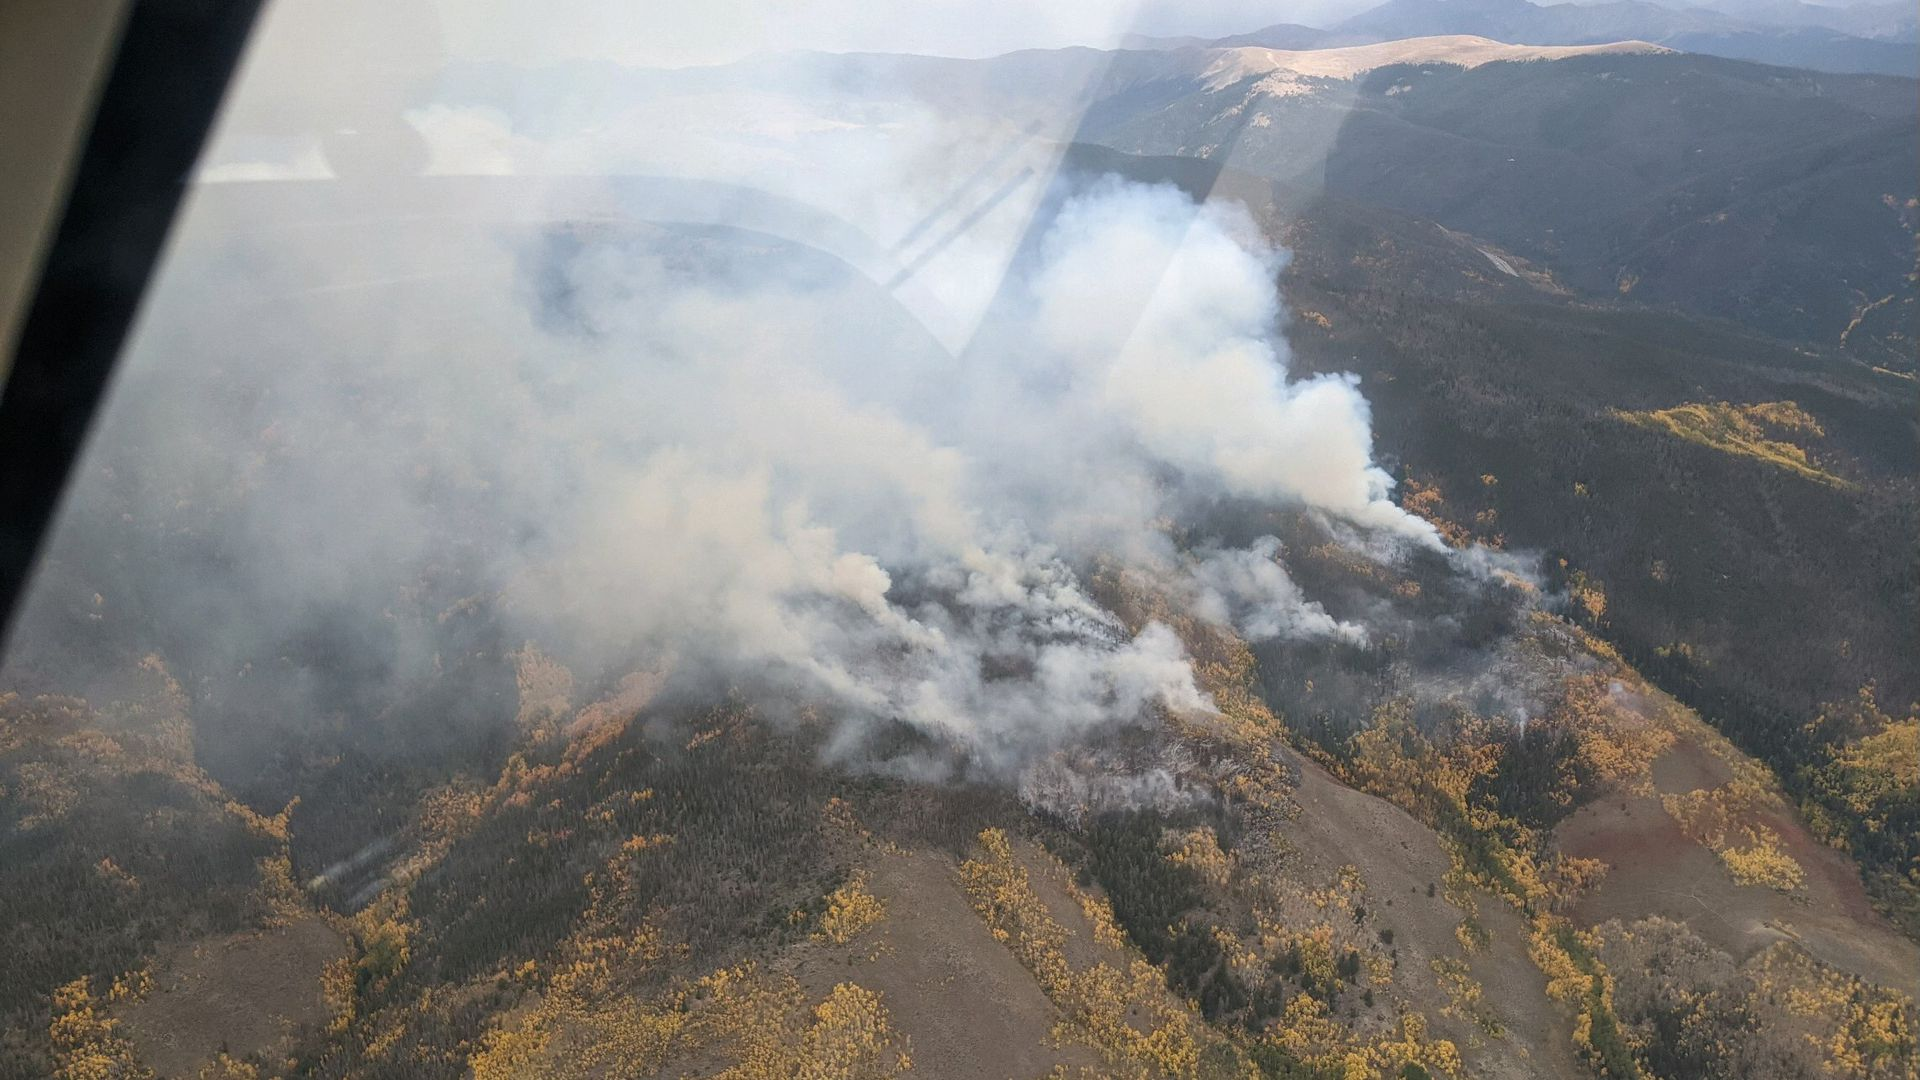 An aerial view of the Ptarmigan fire near Silverthorne on Tuesday afternoon. Photo courtesy of the U.S. Forest Service